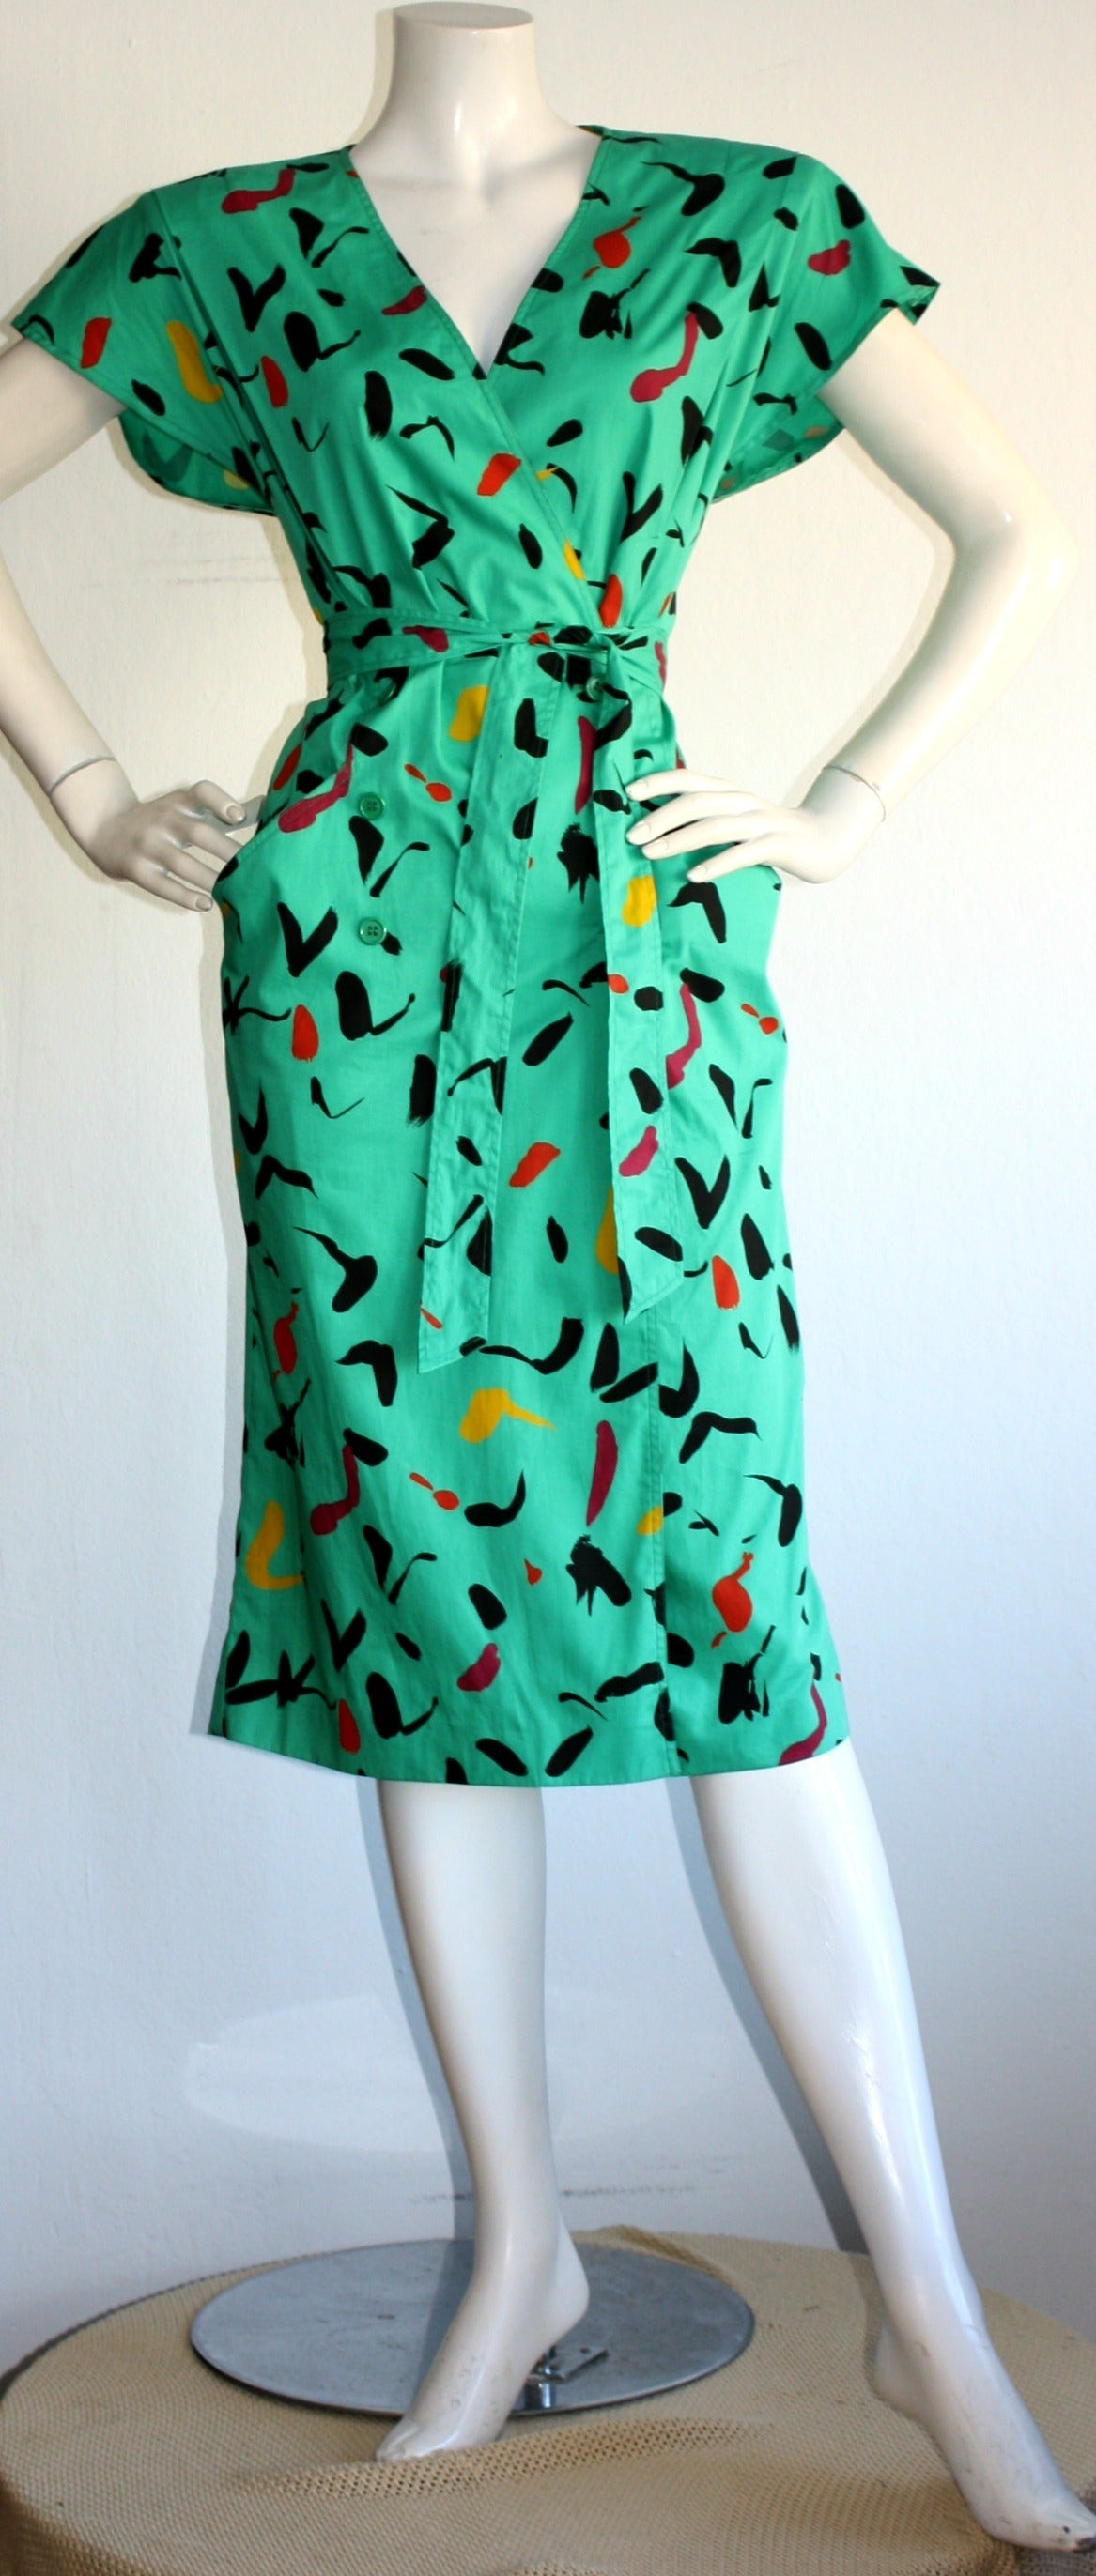 Vintage Emanuel Ungaro Dress Avant Garde Kelly Green Graffiti Scribble W/ Belt 2